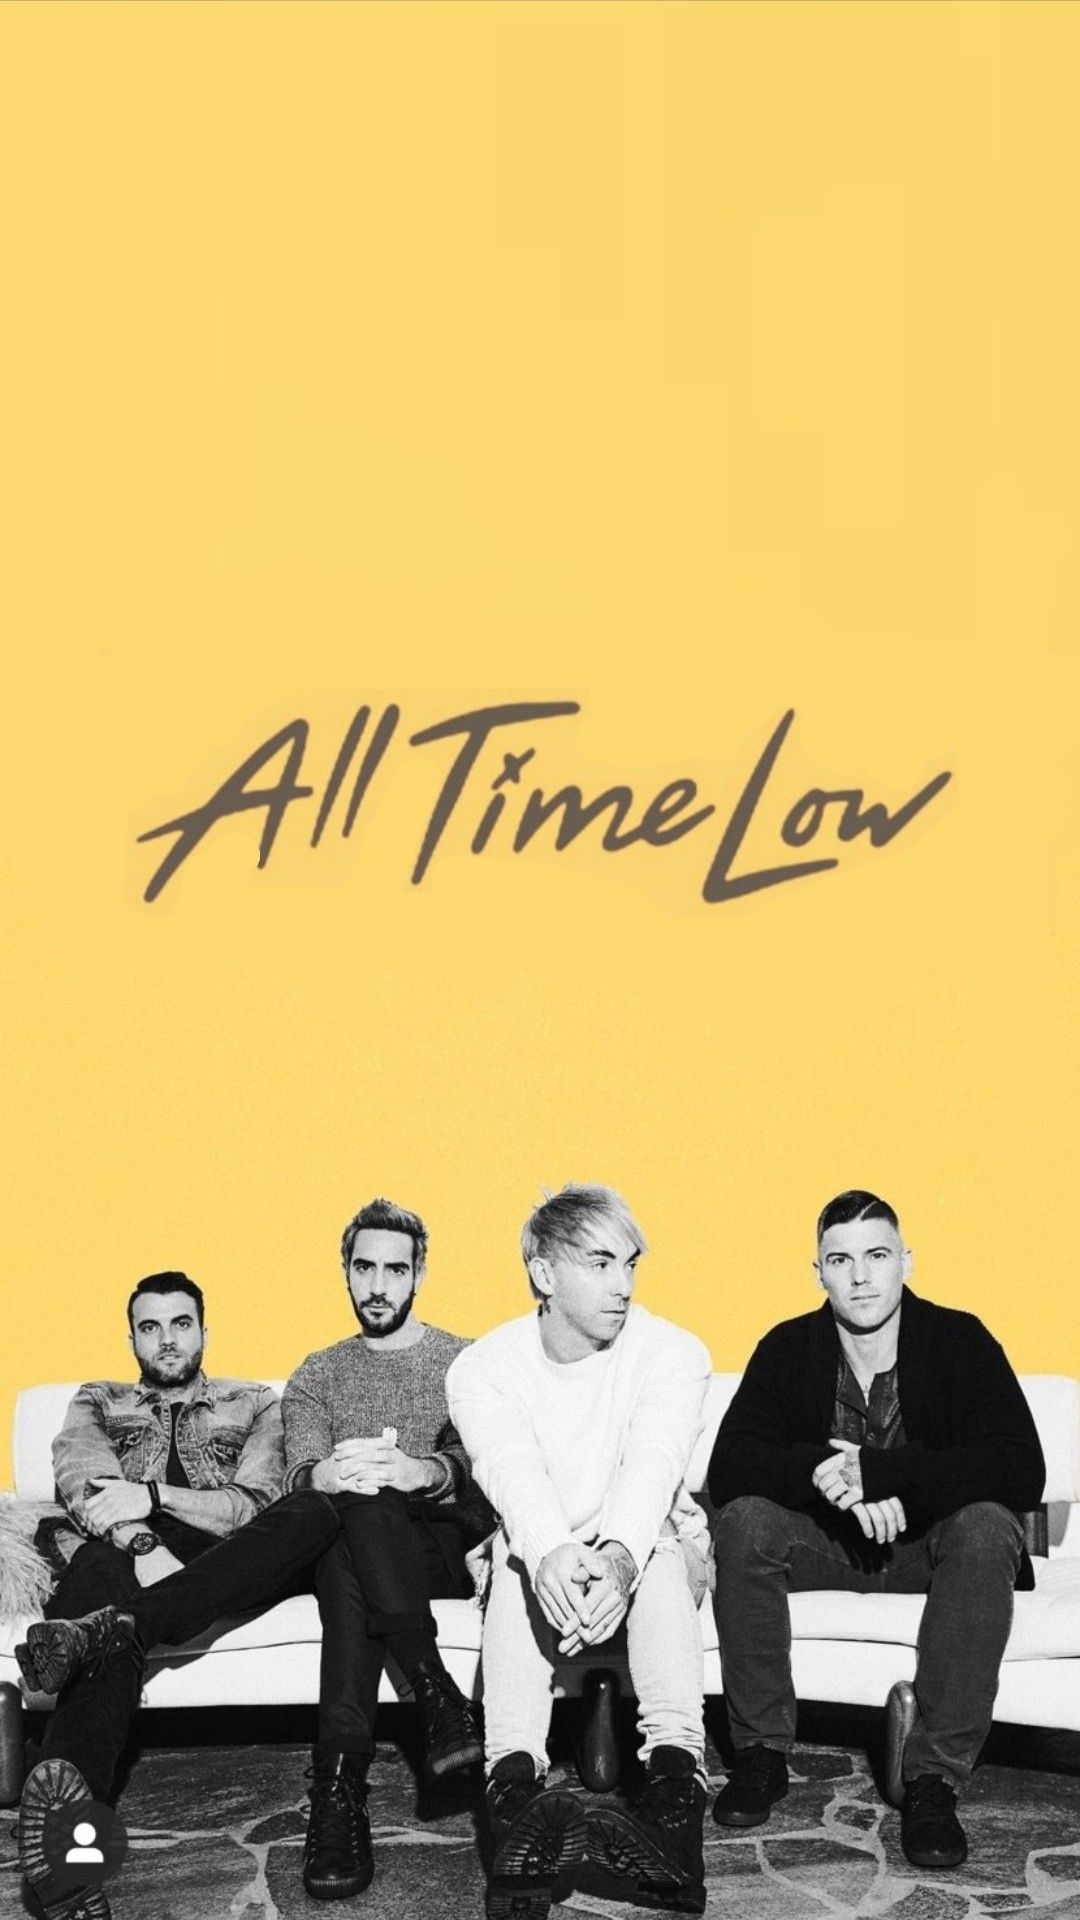 Pin On All Time Low